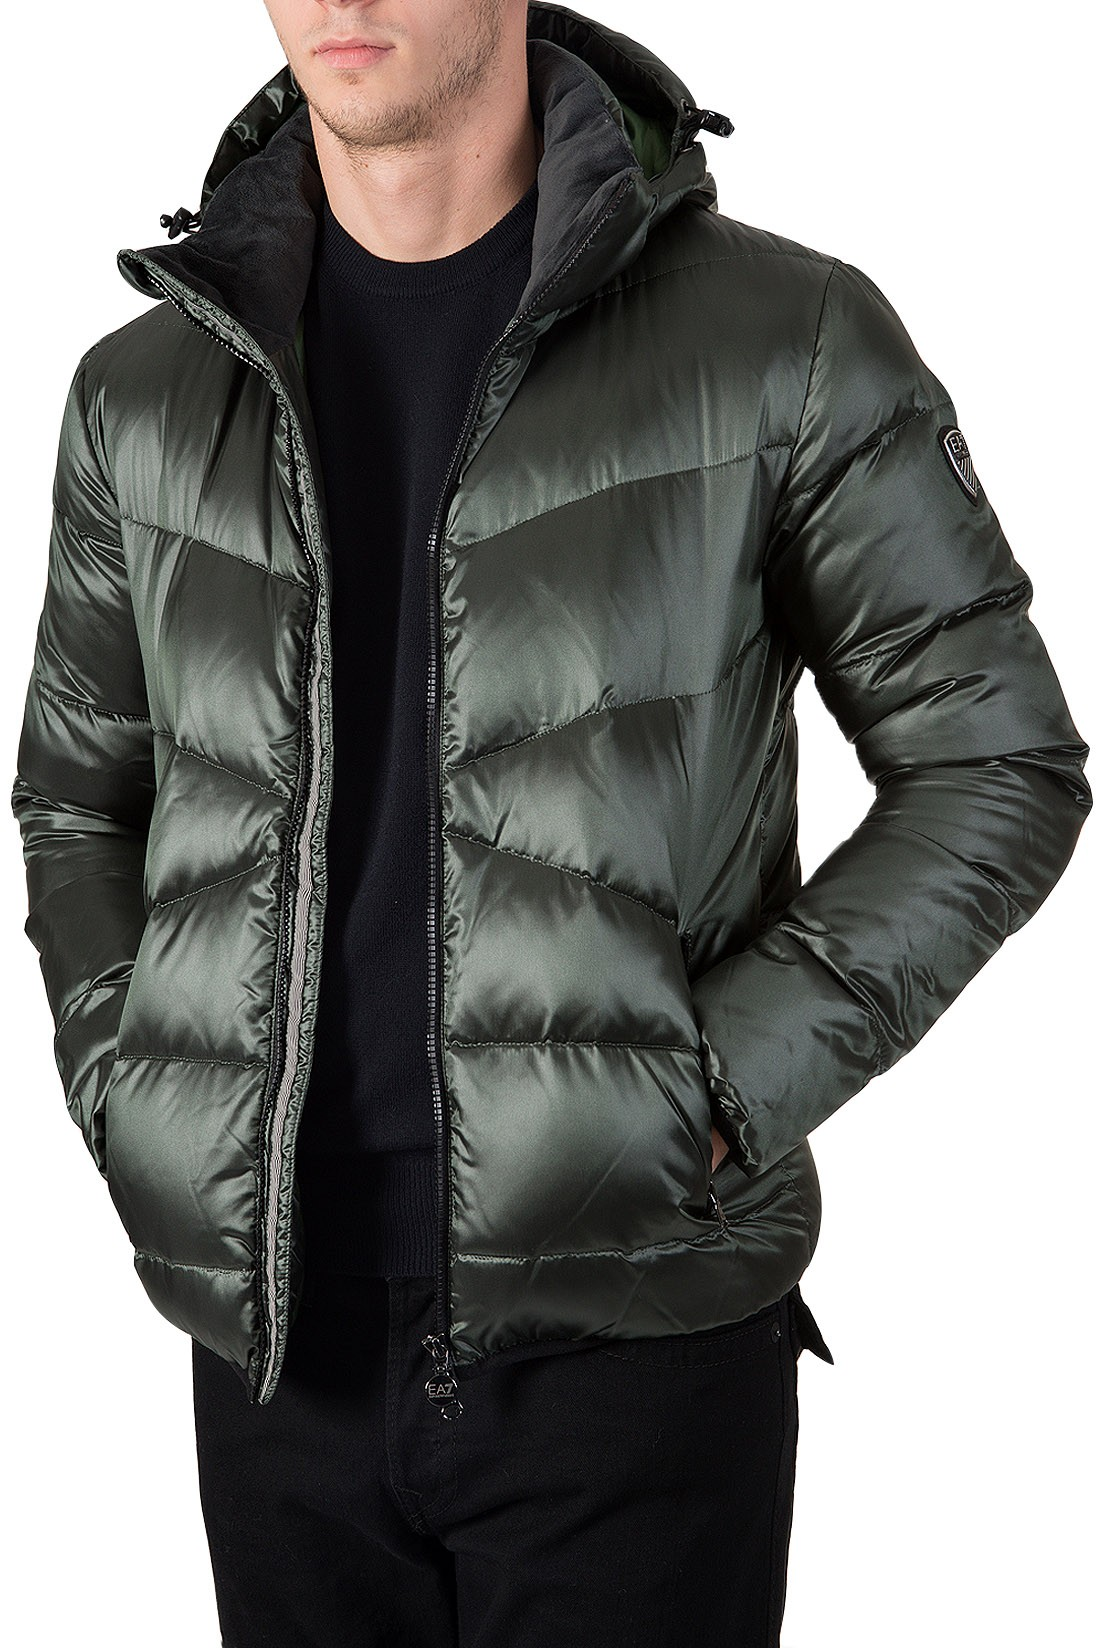 Latest Fashion Men's Outerwear Winter Coats and Jackets Collection By Armani (20)